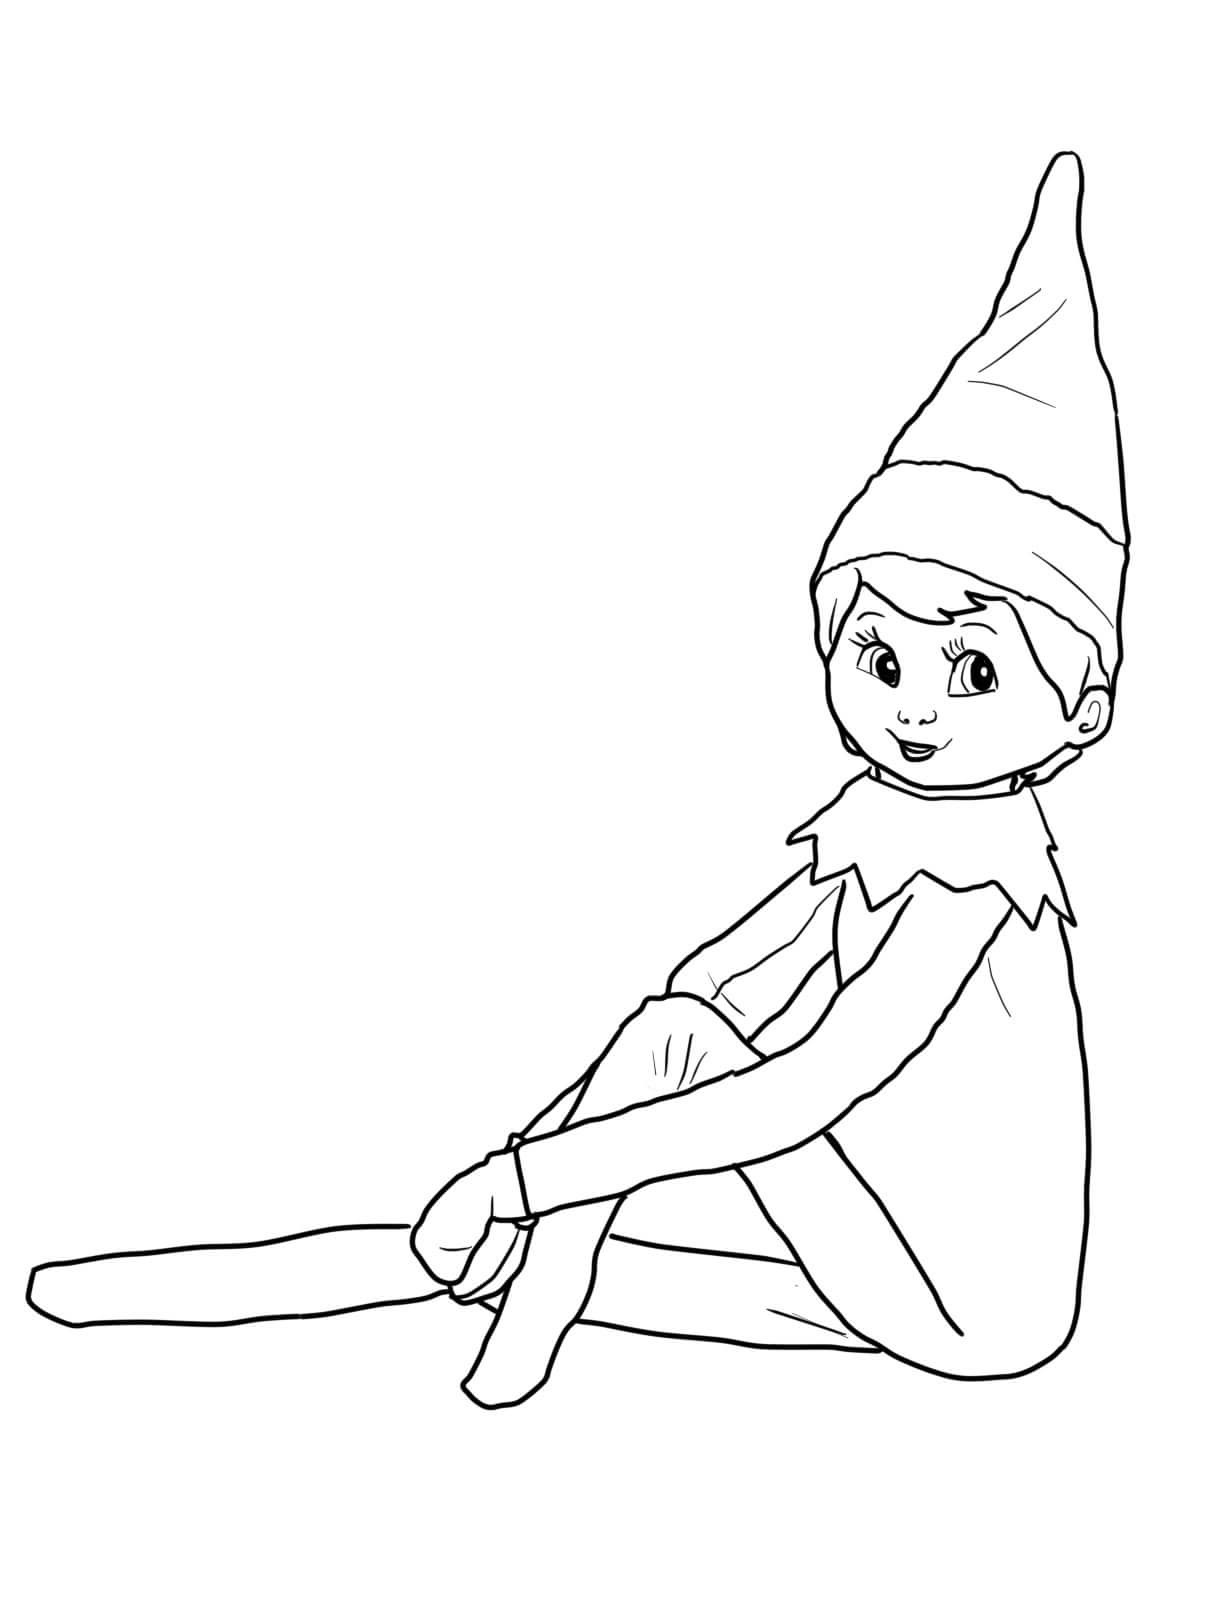 elf on the shelf pictures to color 30 free printable elf on the shelf coloring pages shelf to on color elf pictures the